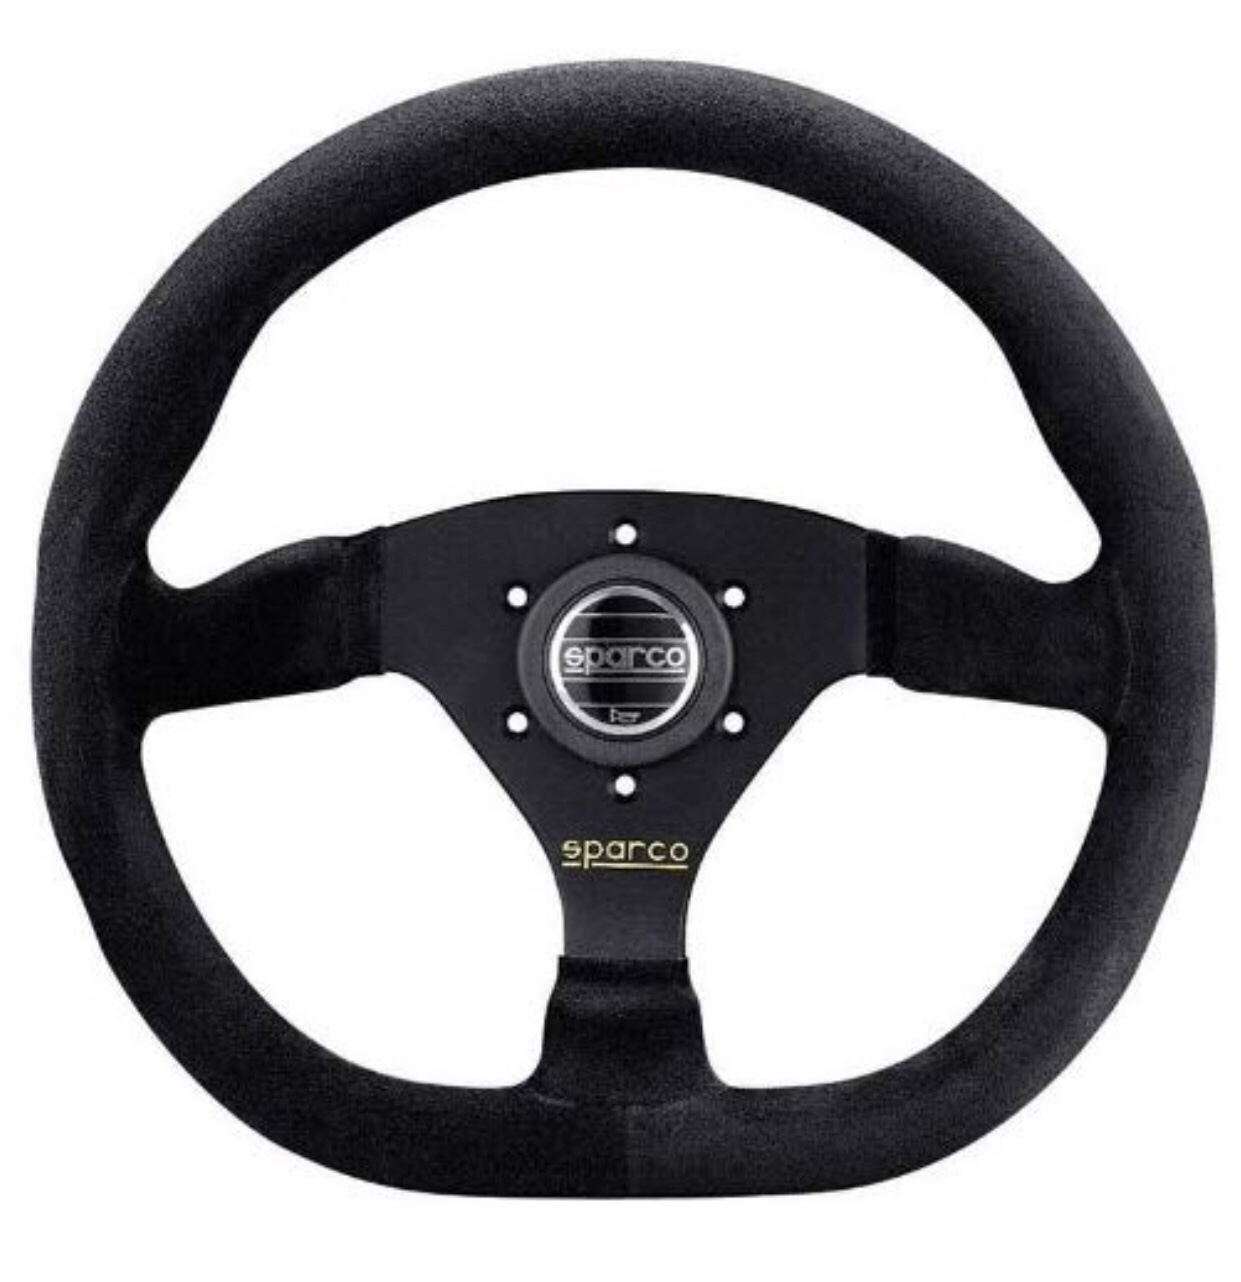 Sparco L360 Steering Wheel Purchased